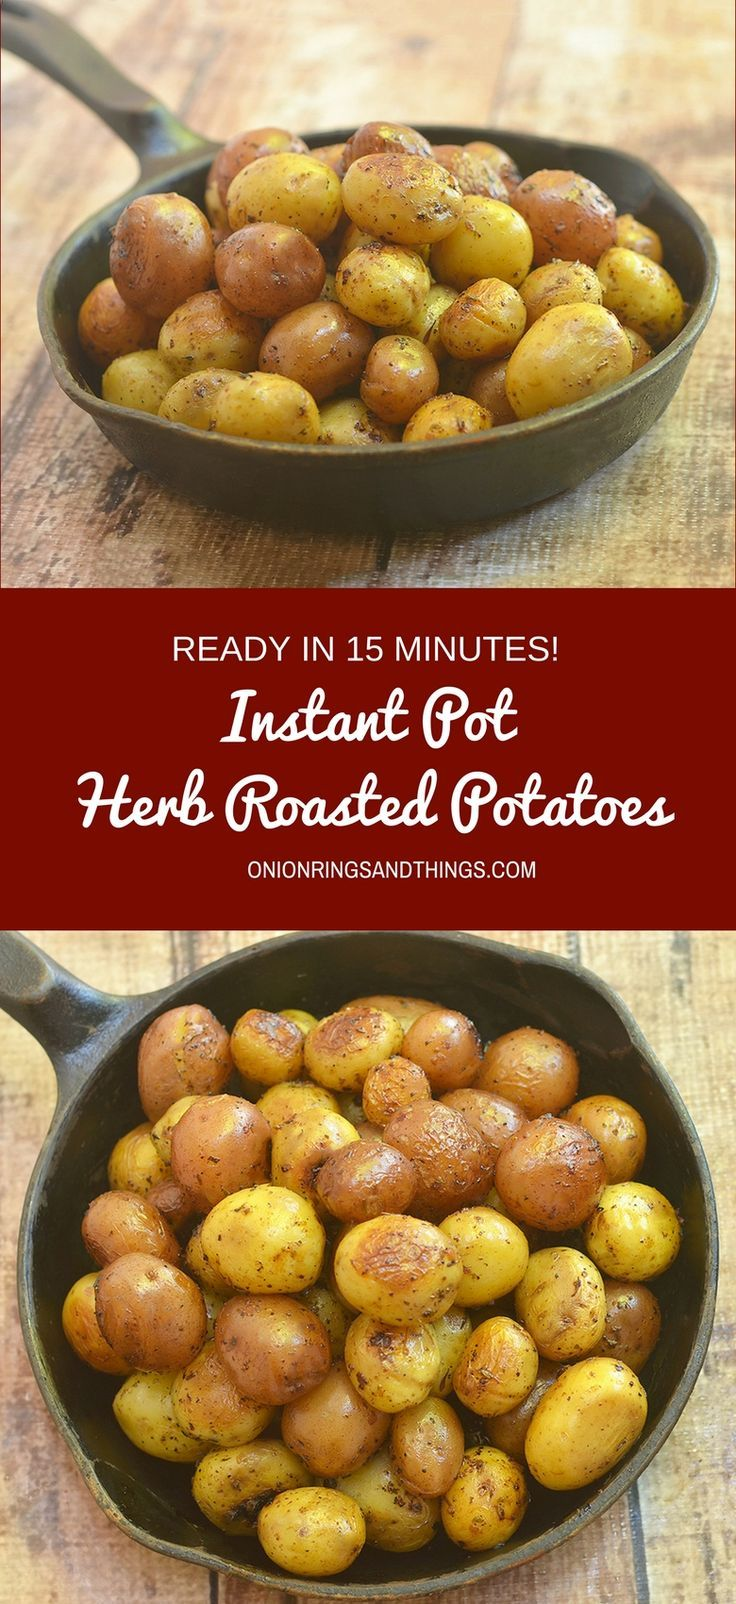 Instant Pot Herb Roasted Potatoes Recipe Instant Pot Recipes Instant Pot Recipes Chicken Recipes